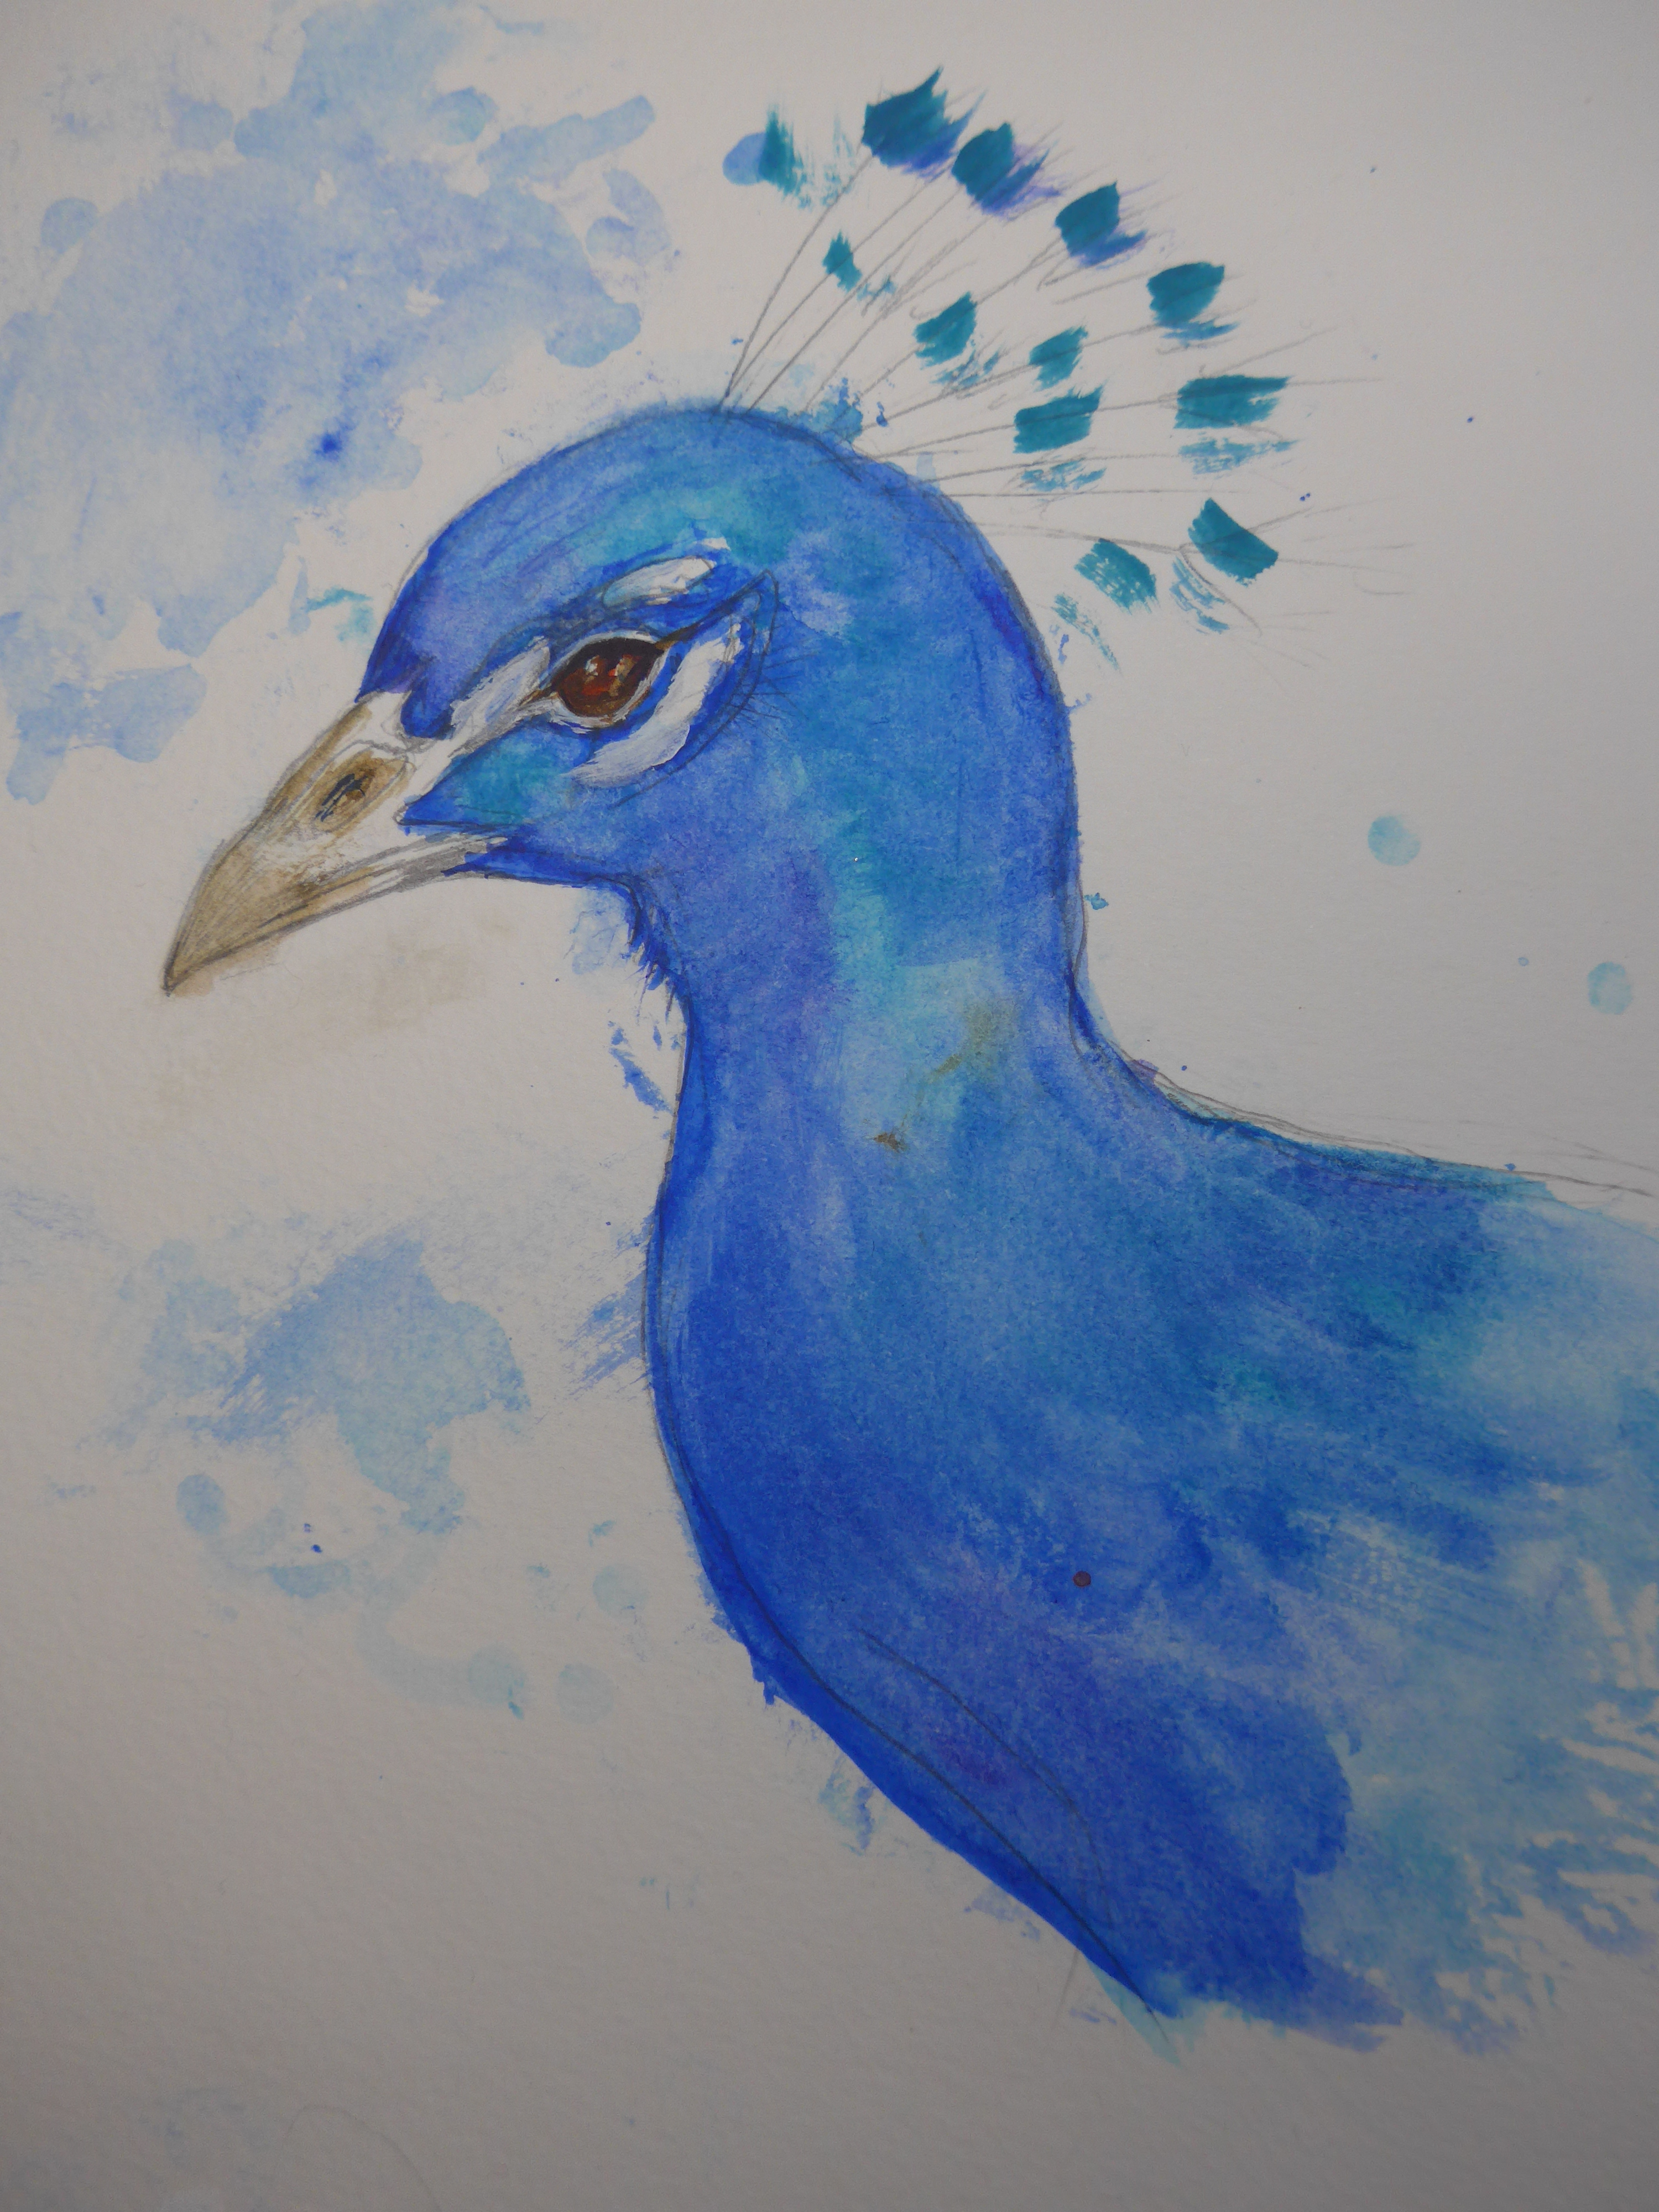 Sketch Painting of a peacock by artist Diane Young